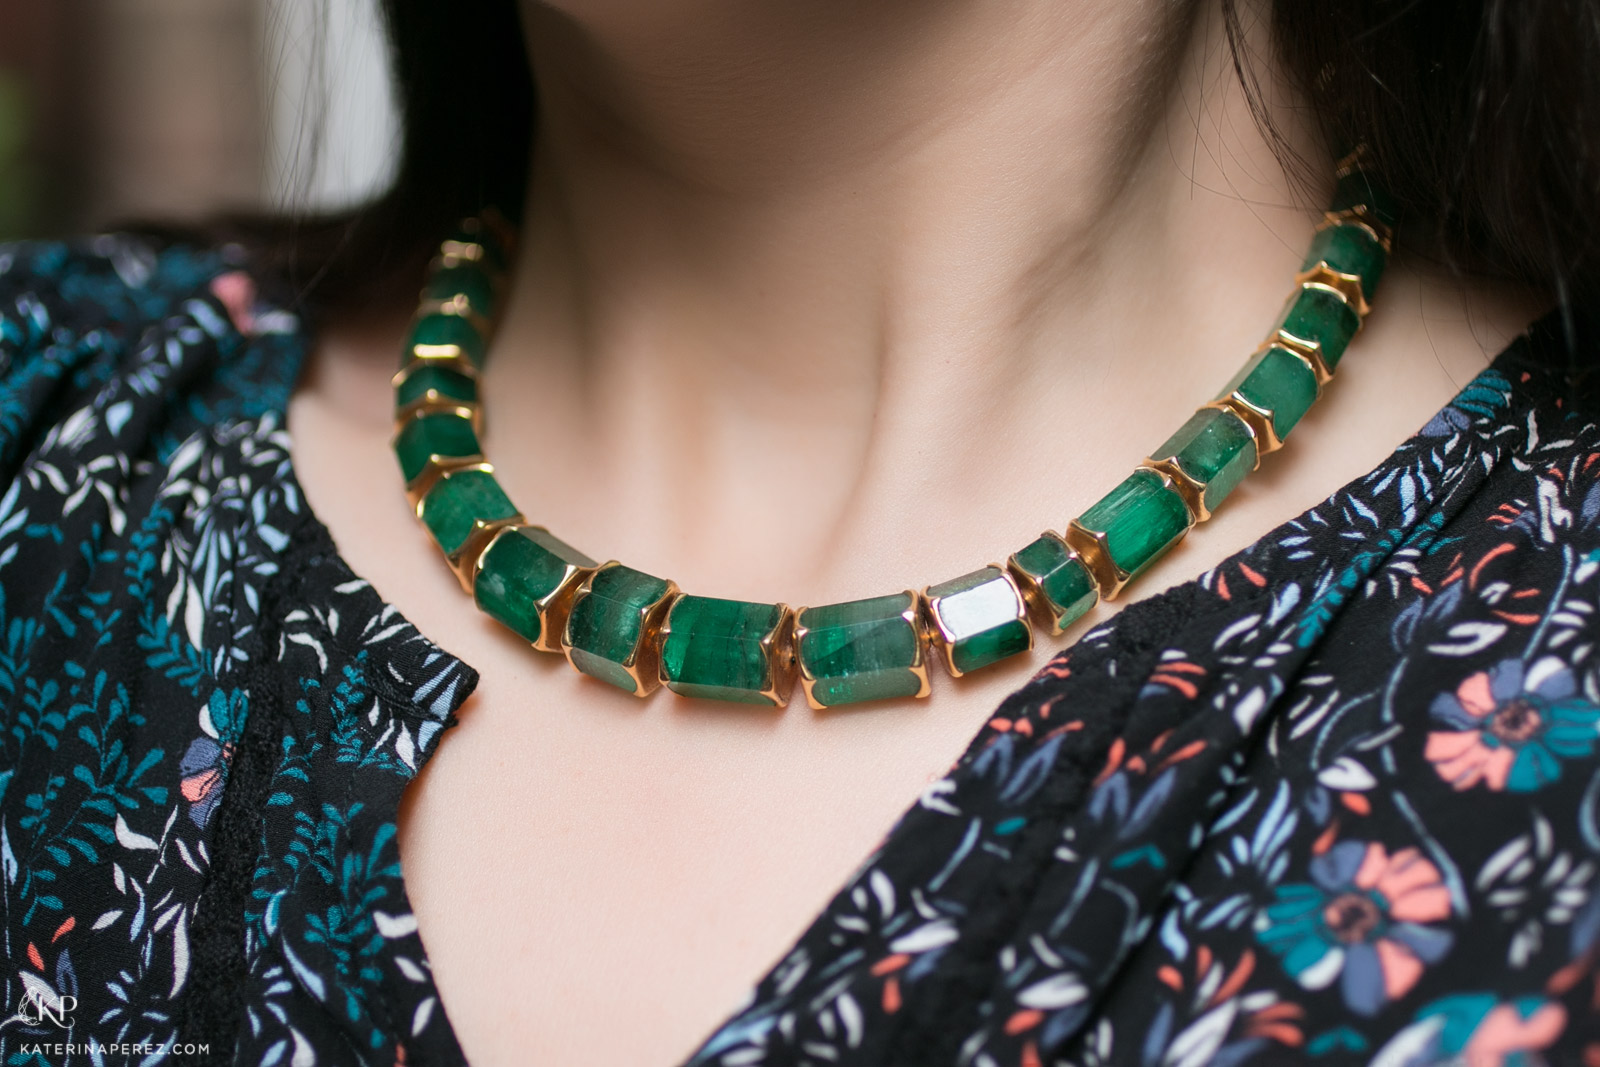 Philippe Pfeiffer necklace in 400ct Emerald and Yellow Gold